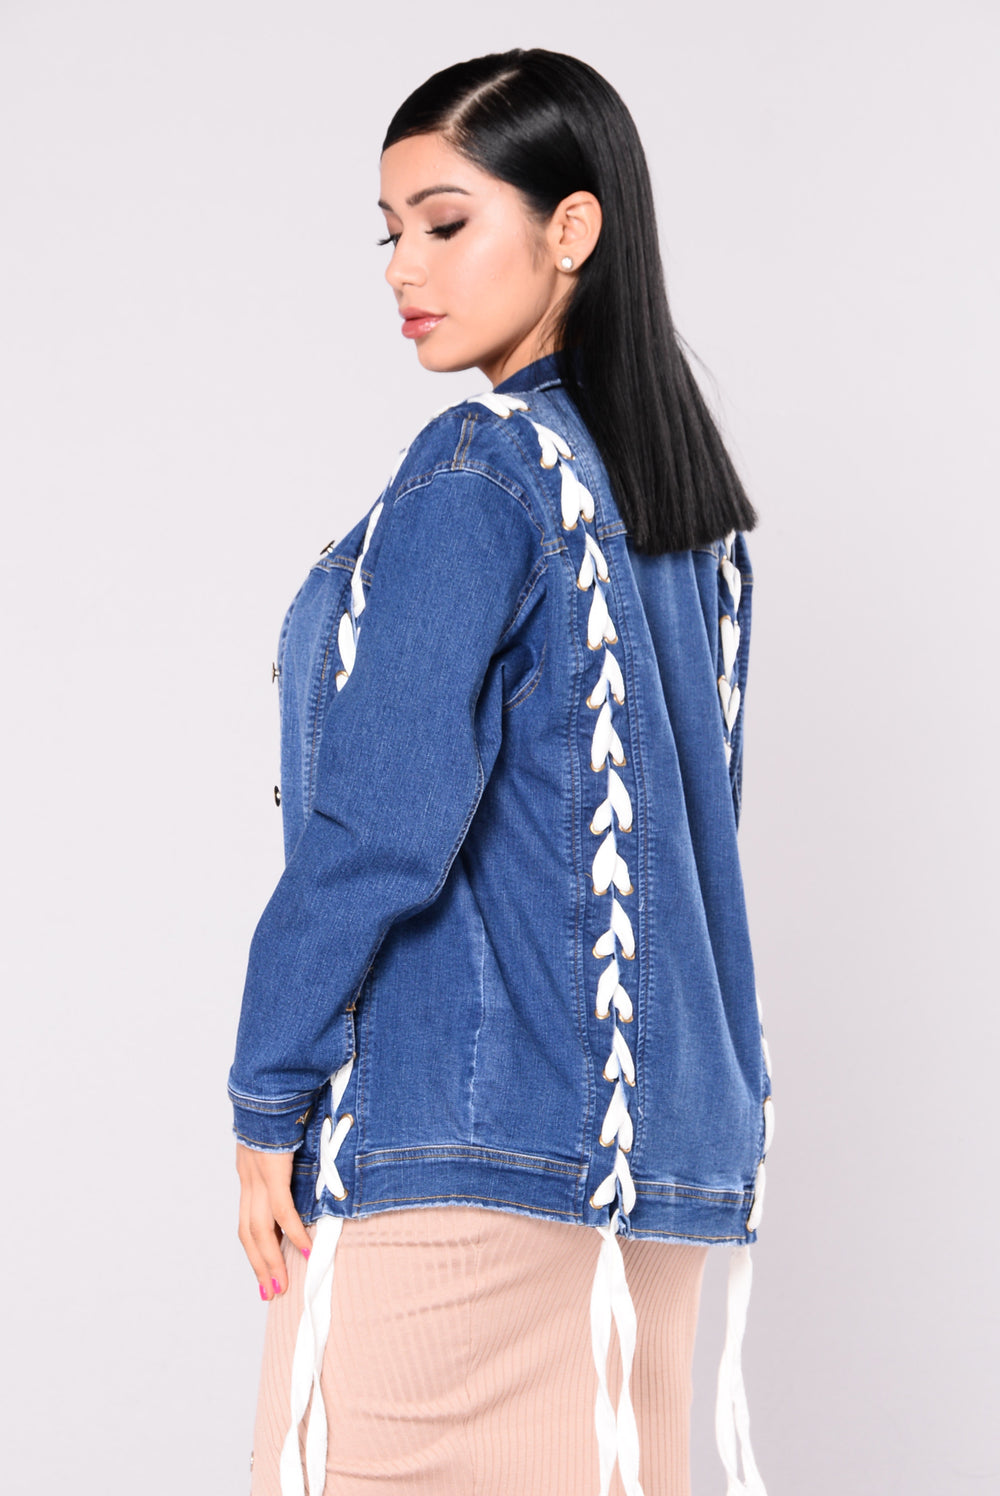 Love Letter Denim Jacket - Medium